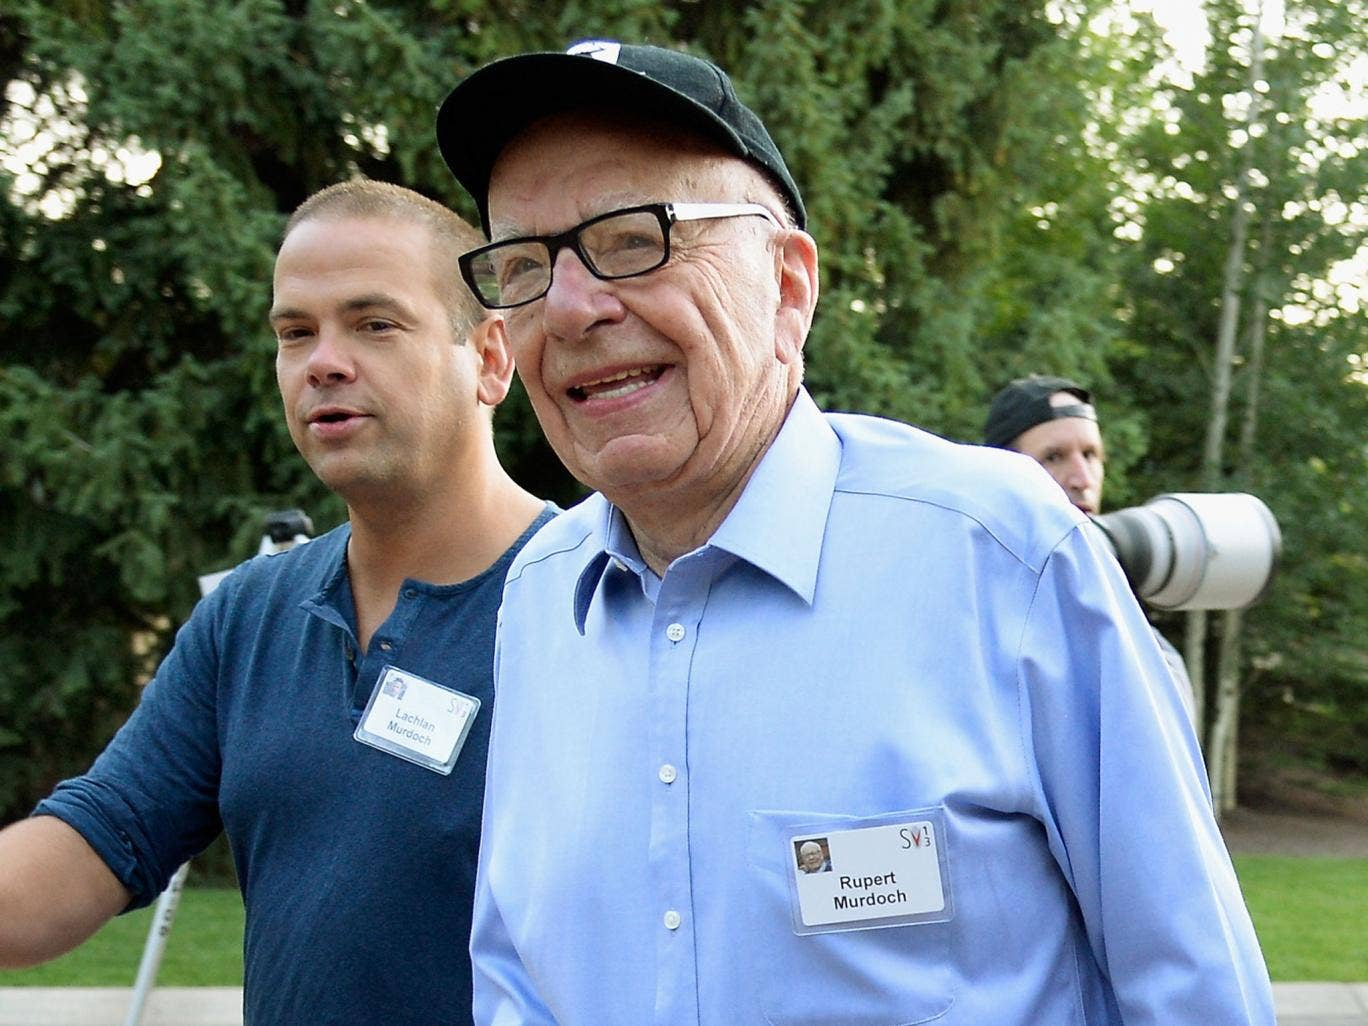 Rupert Murdoch has written to MPs to apologise for his outburst calling police 'incompetent'